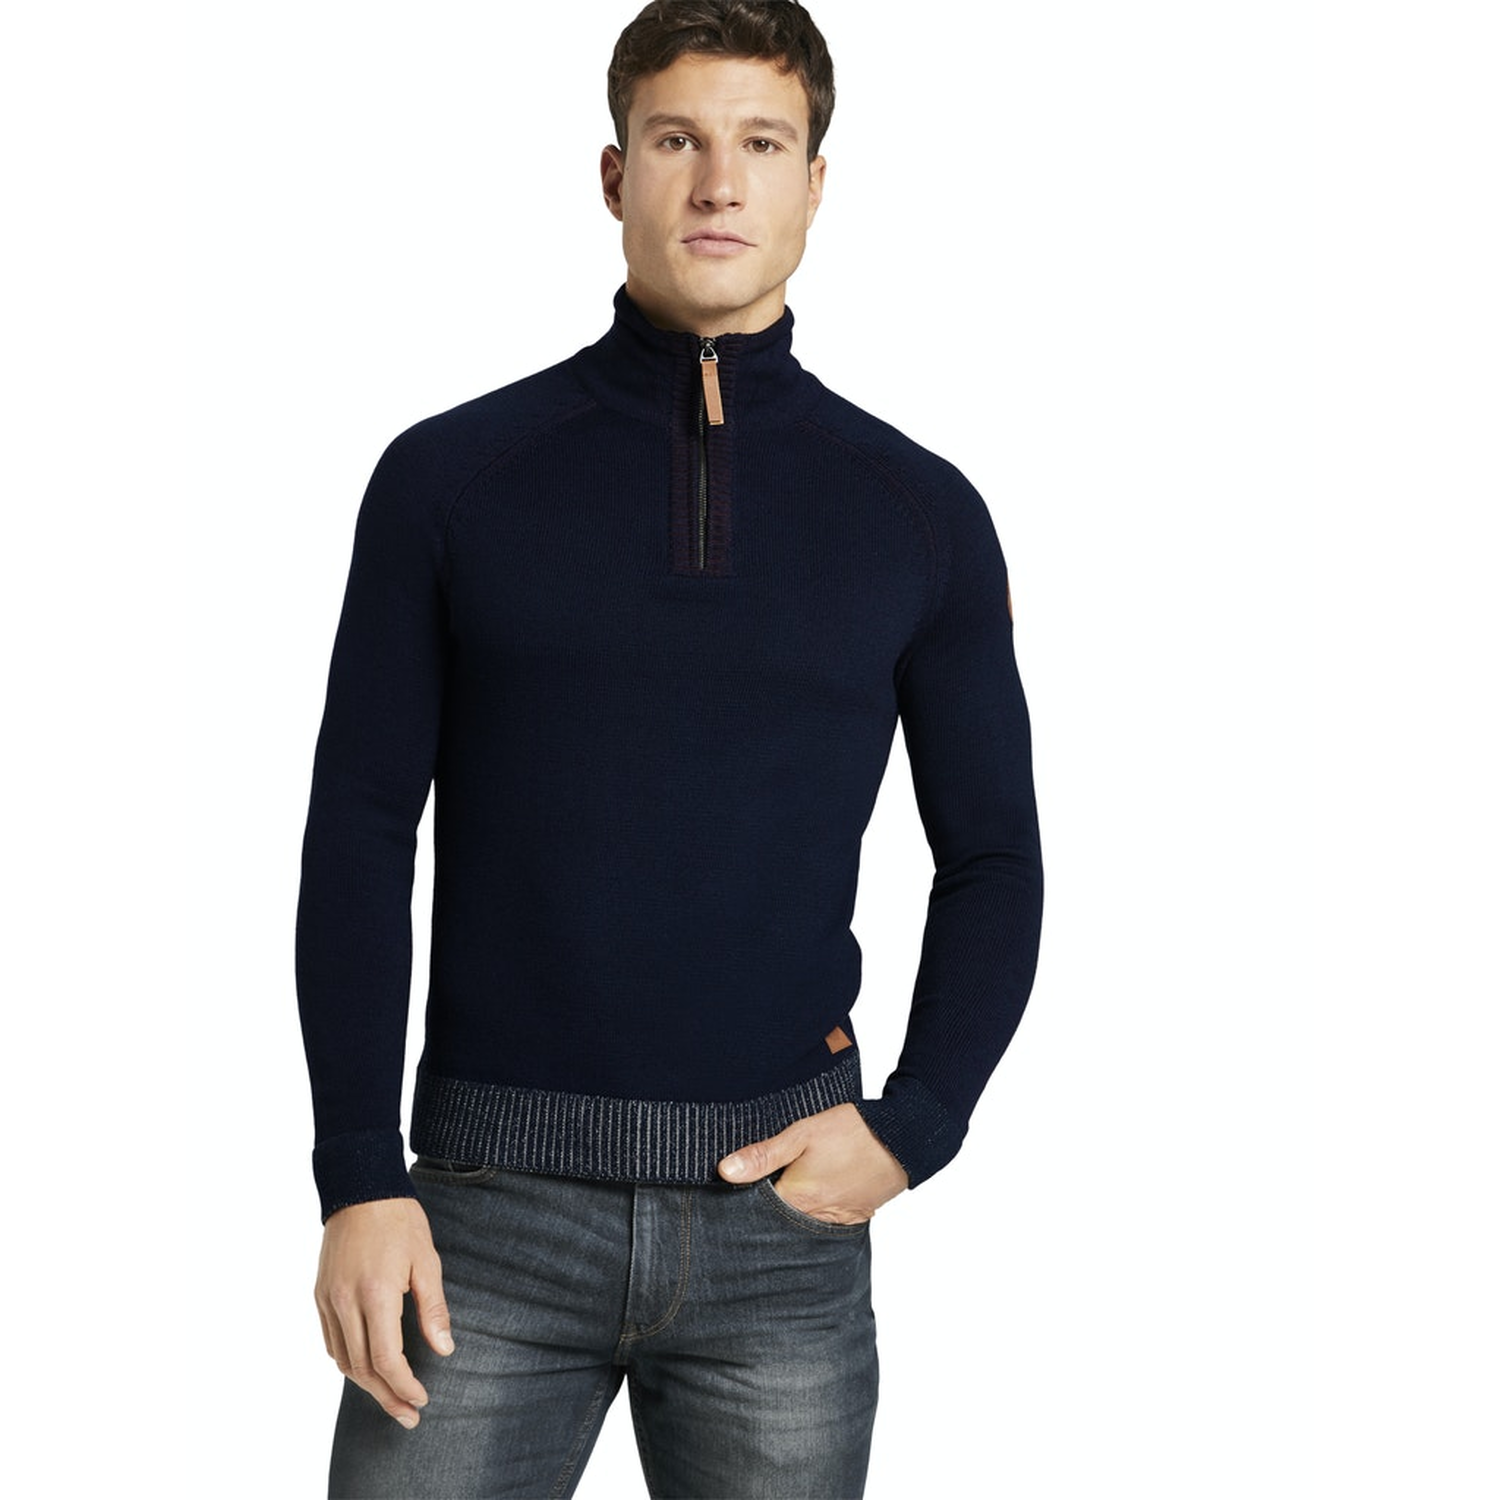 TOM TAILOR Pullover meliert sky blue